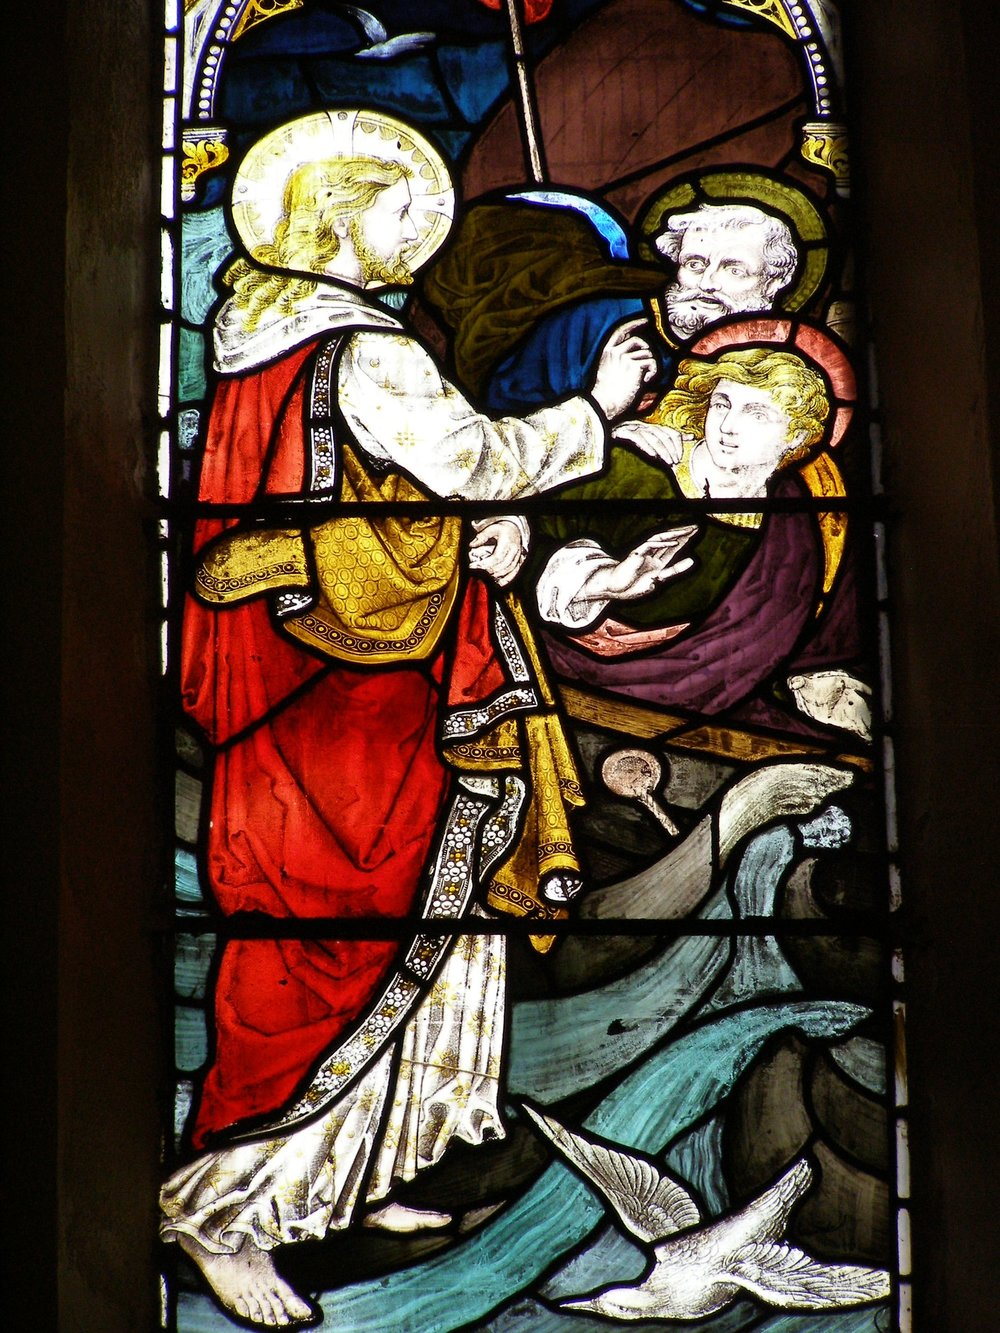 Symbolism and storytelling is present in each stained glass window